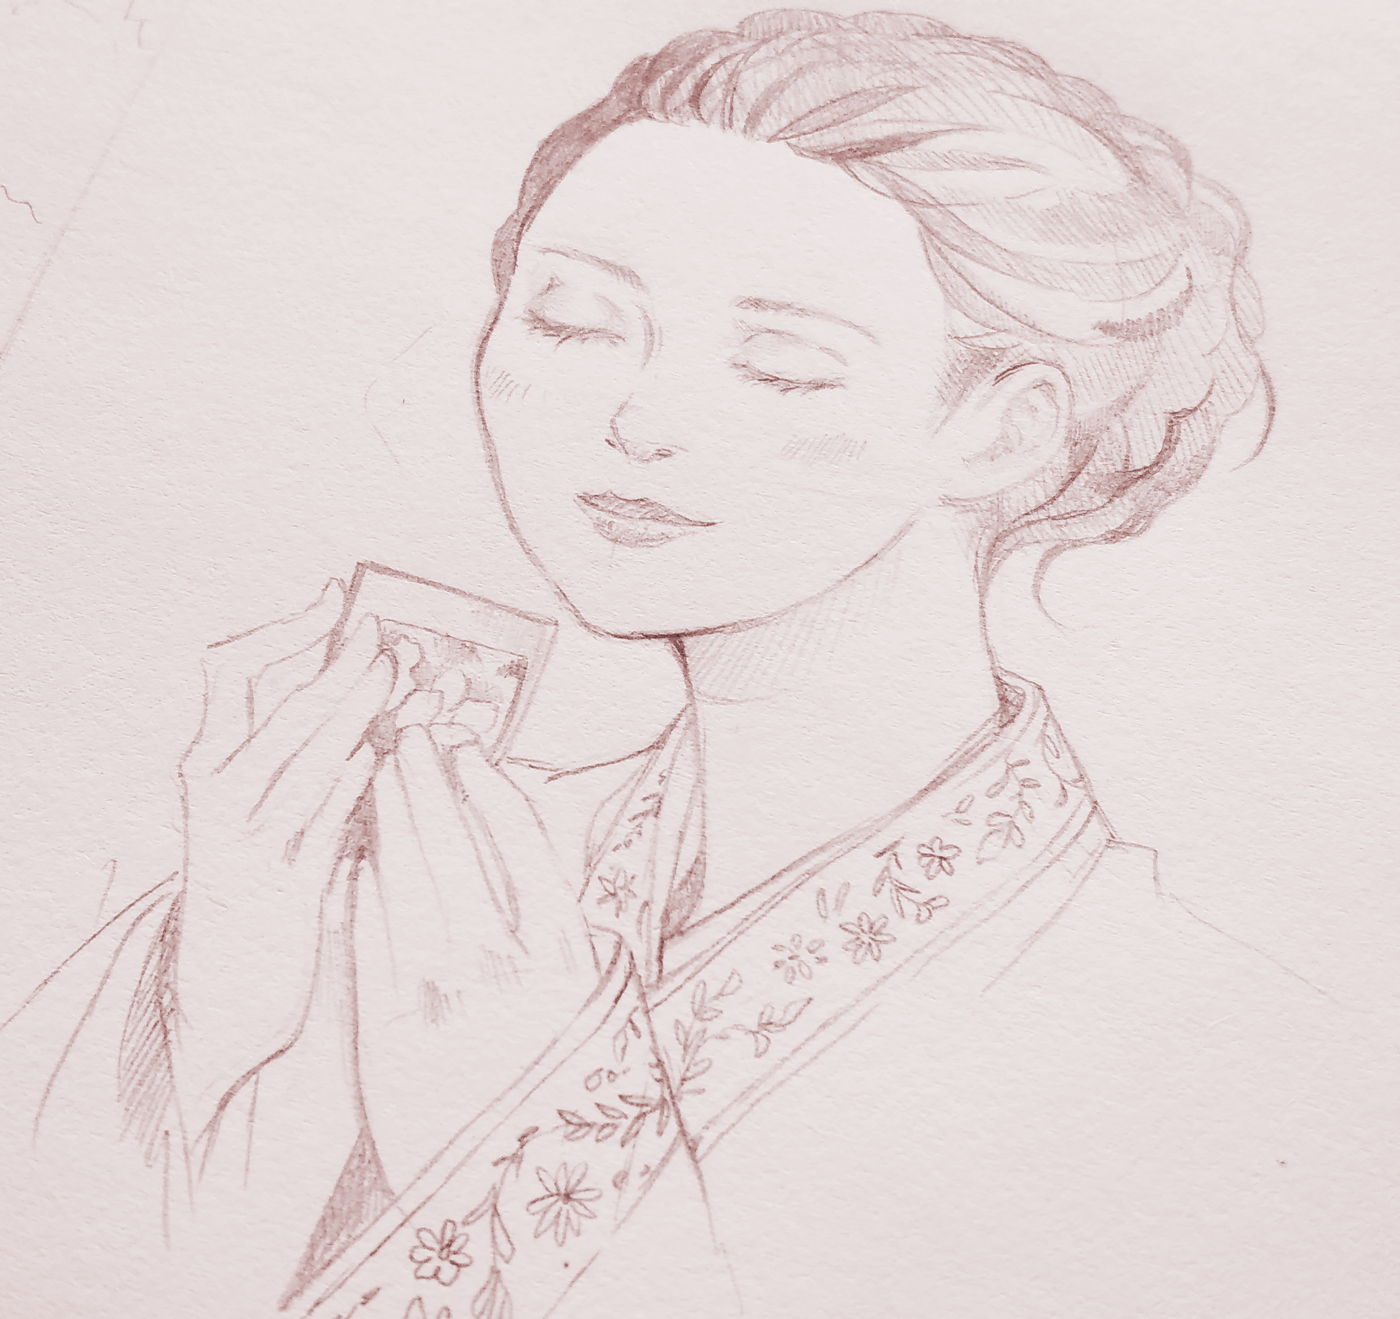 Facial expression study in pencil for the drawing of a lady wearing Hanbok, drinking tea.